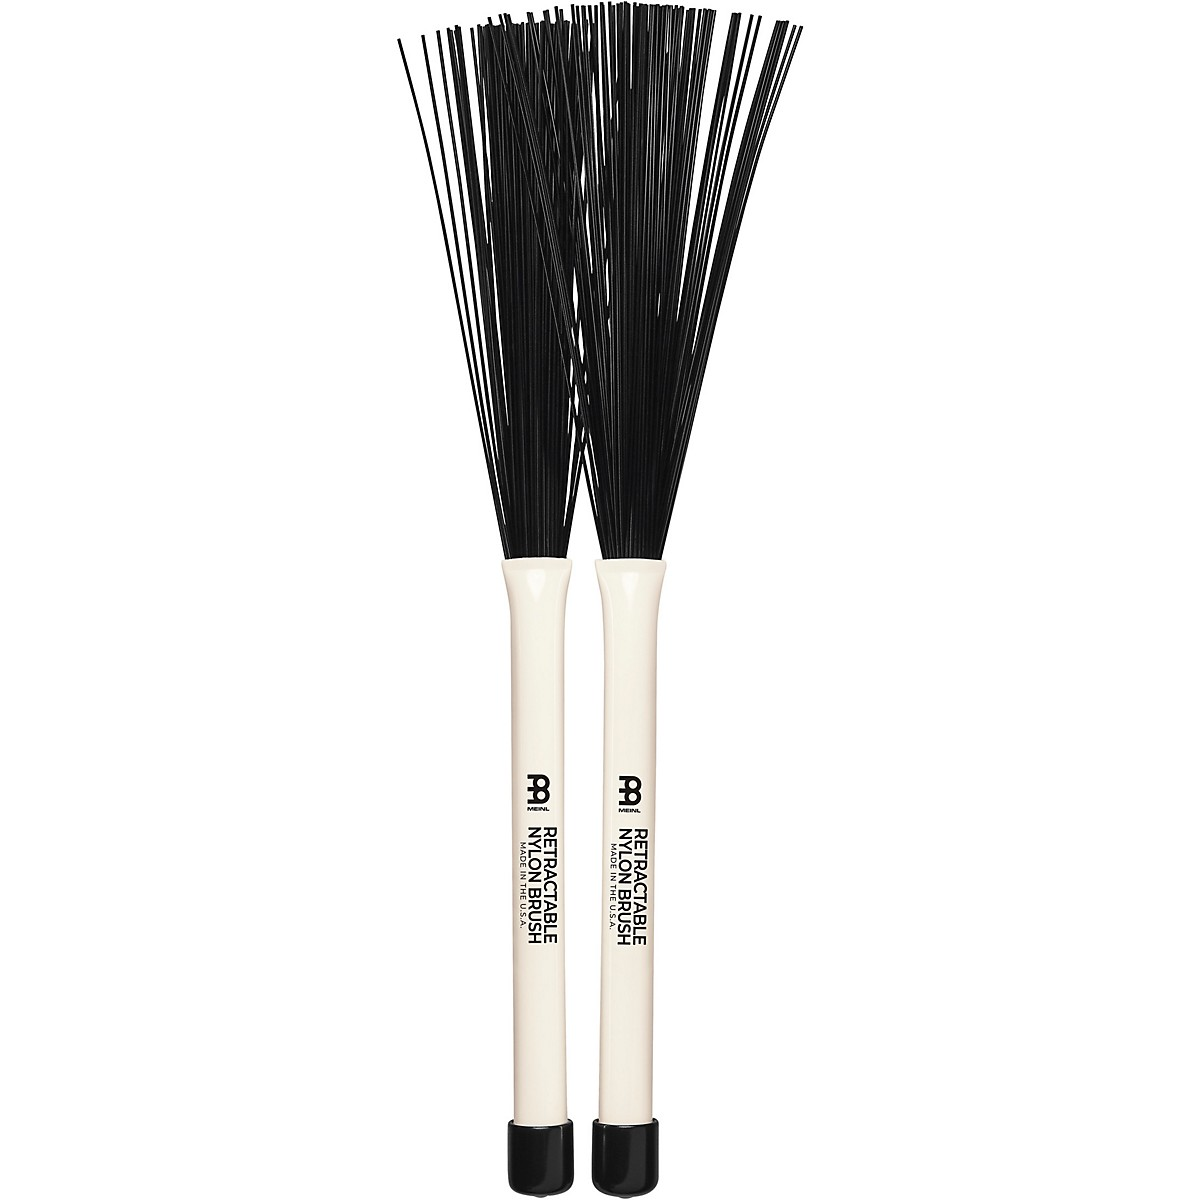 Meinl Stick & Brush Retractable Nylon Brushes